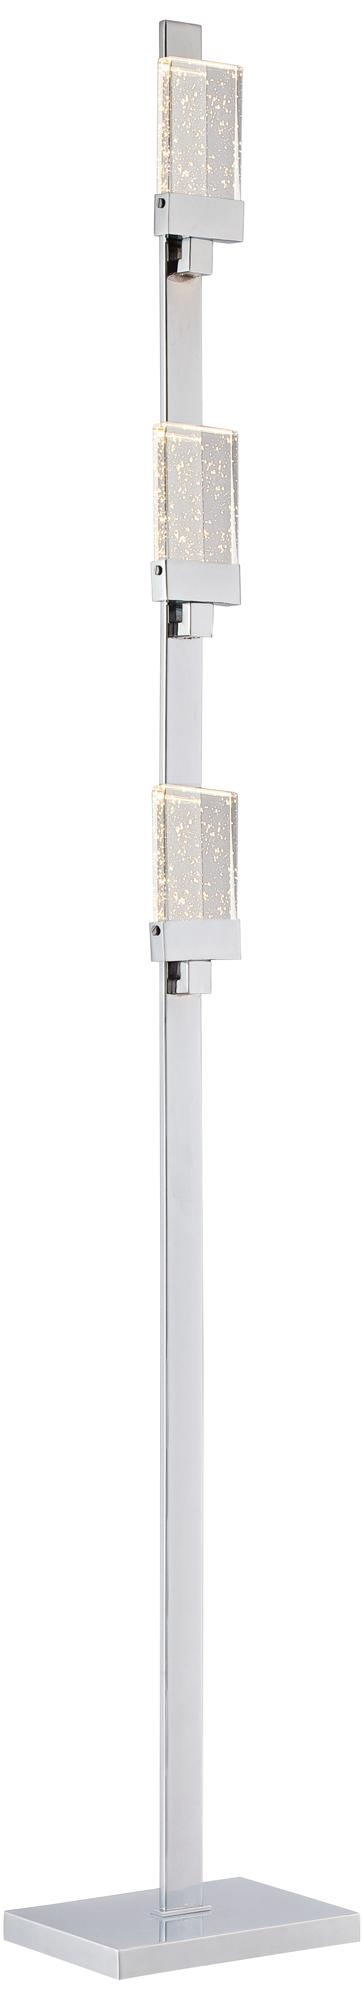 Possini Euro Karista 3-Light LED Floor Lamp (8C032)